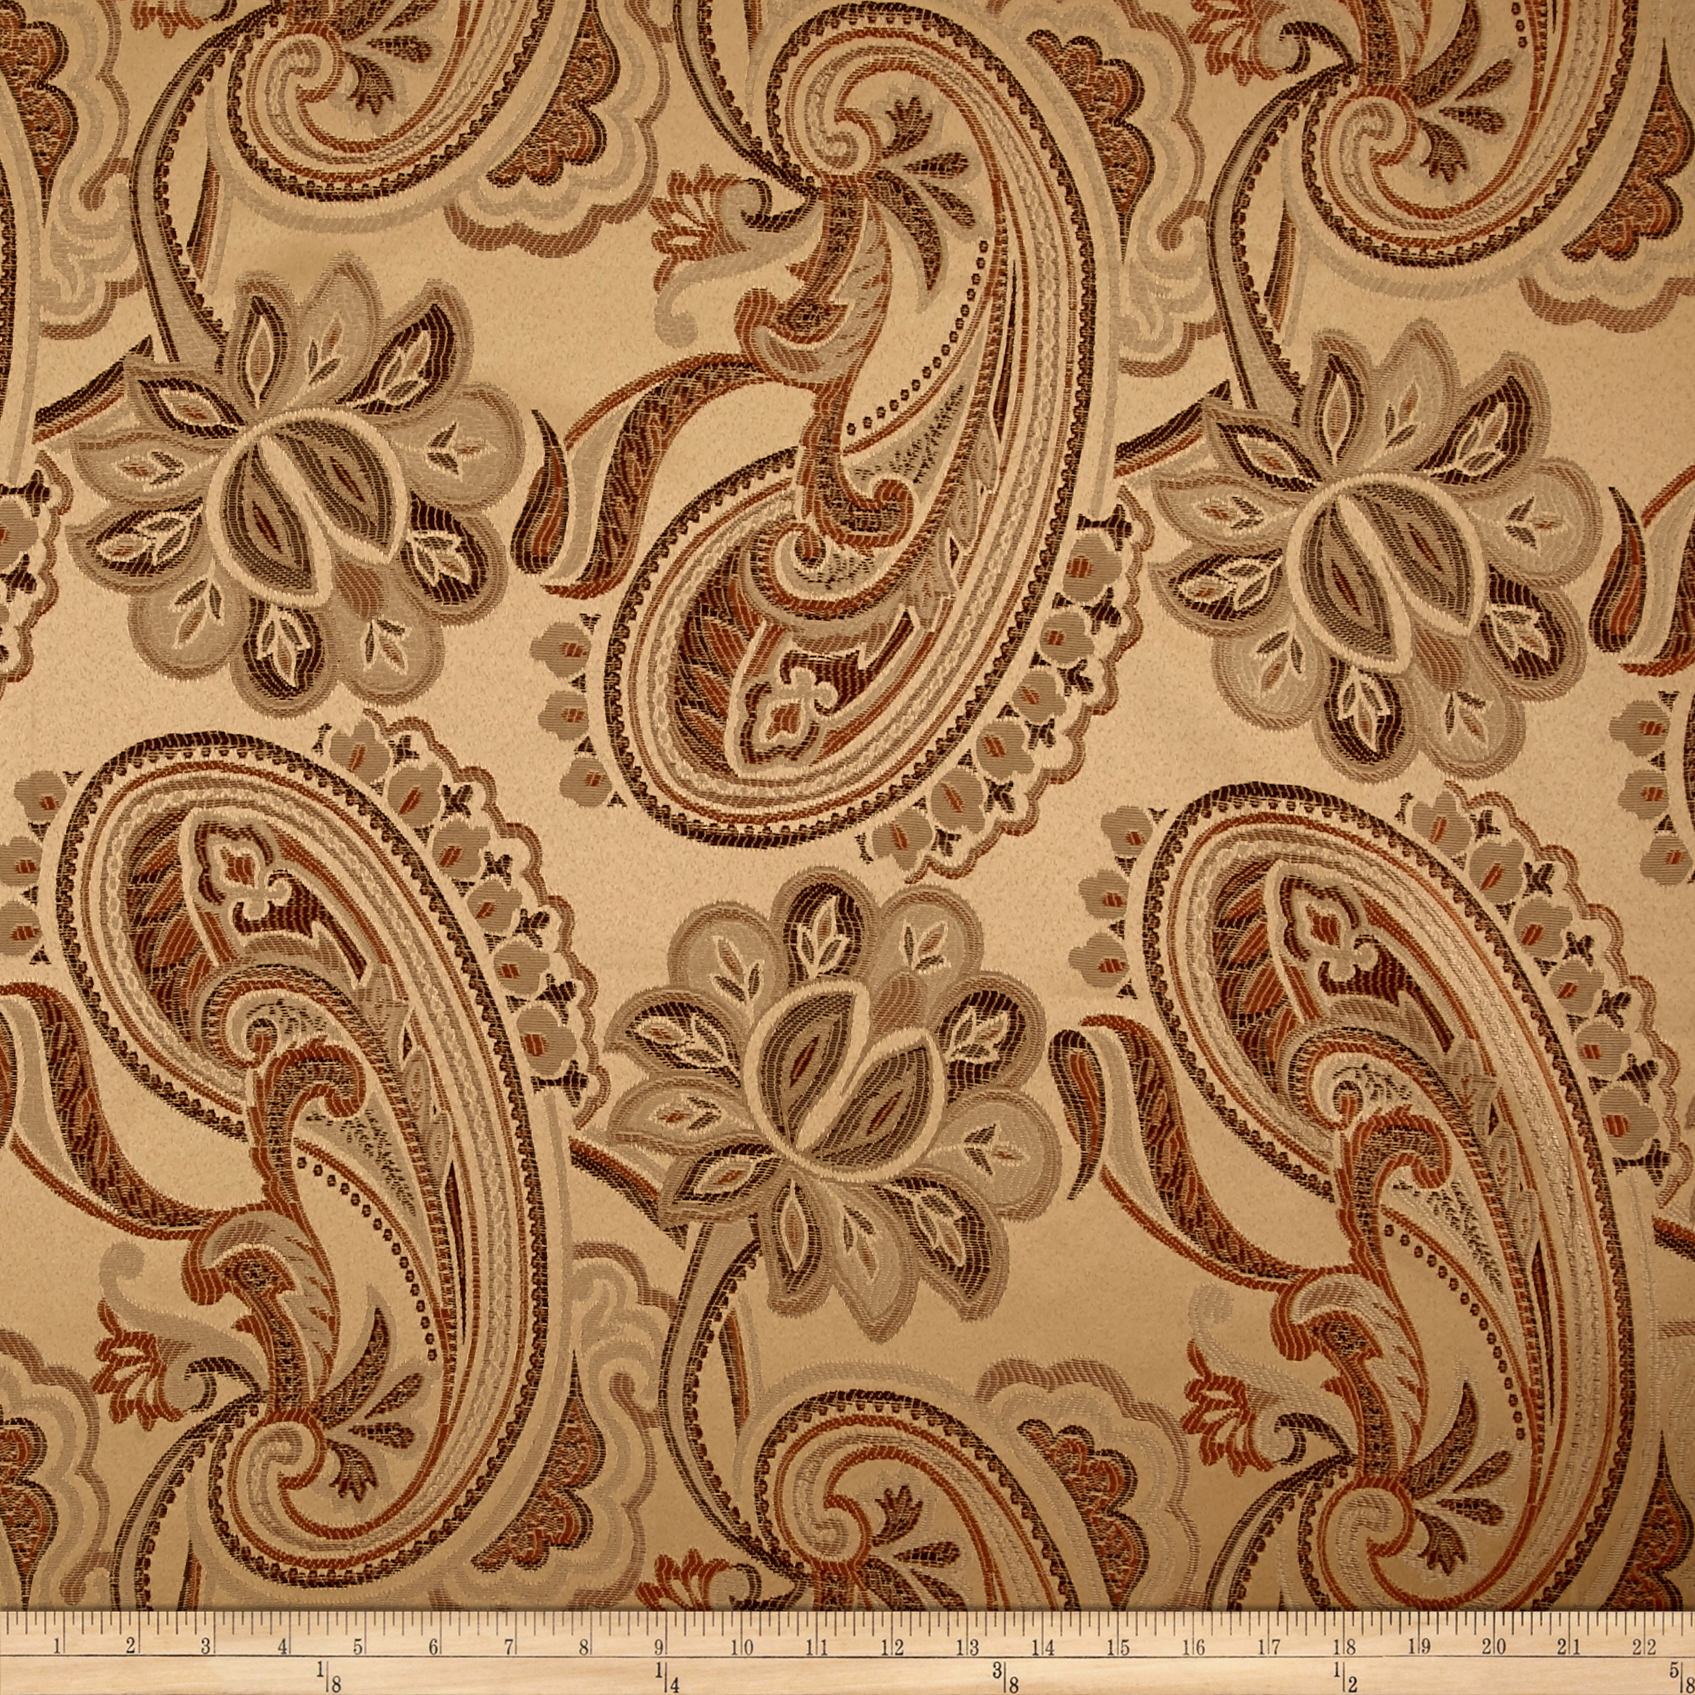 Eroica Dahlia Jacquard Ginger Fabric by Eroica in USA